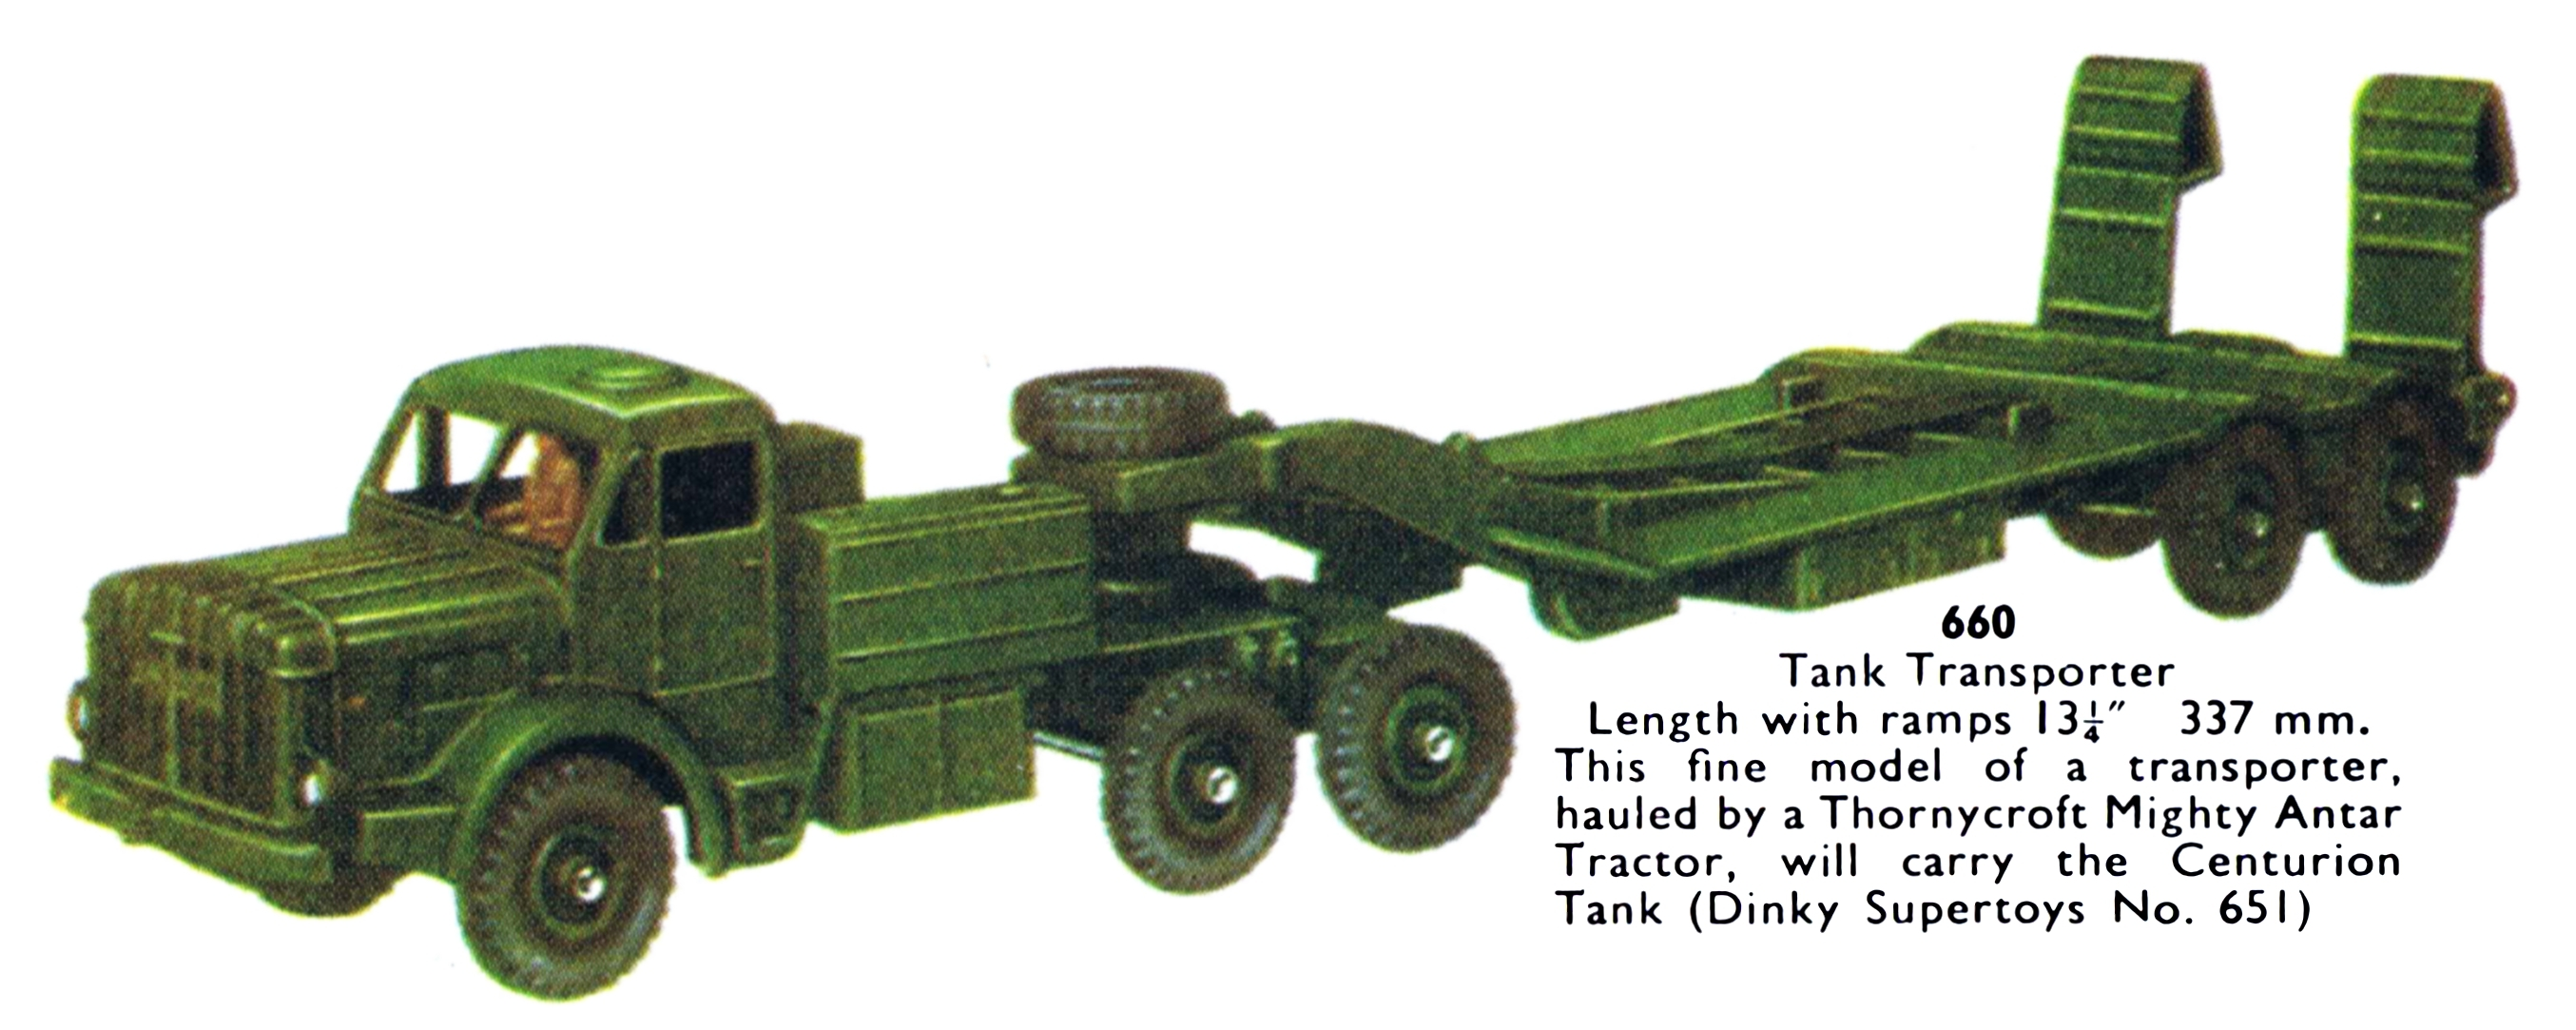 Tank Transporter Dinky Toys 660 The Brighton Toy and Model Index